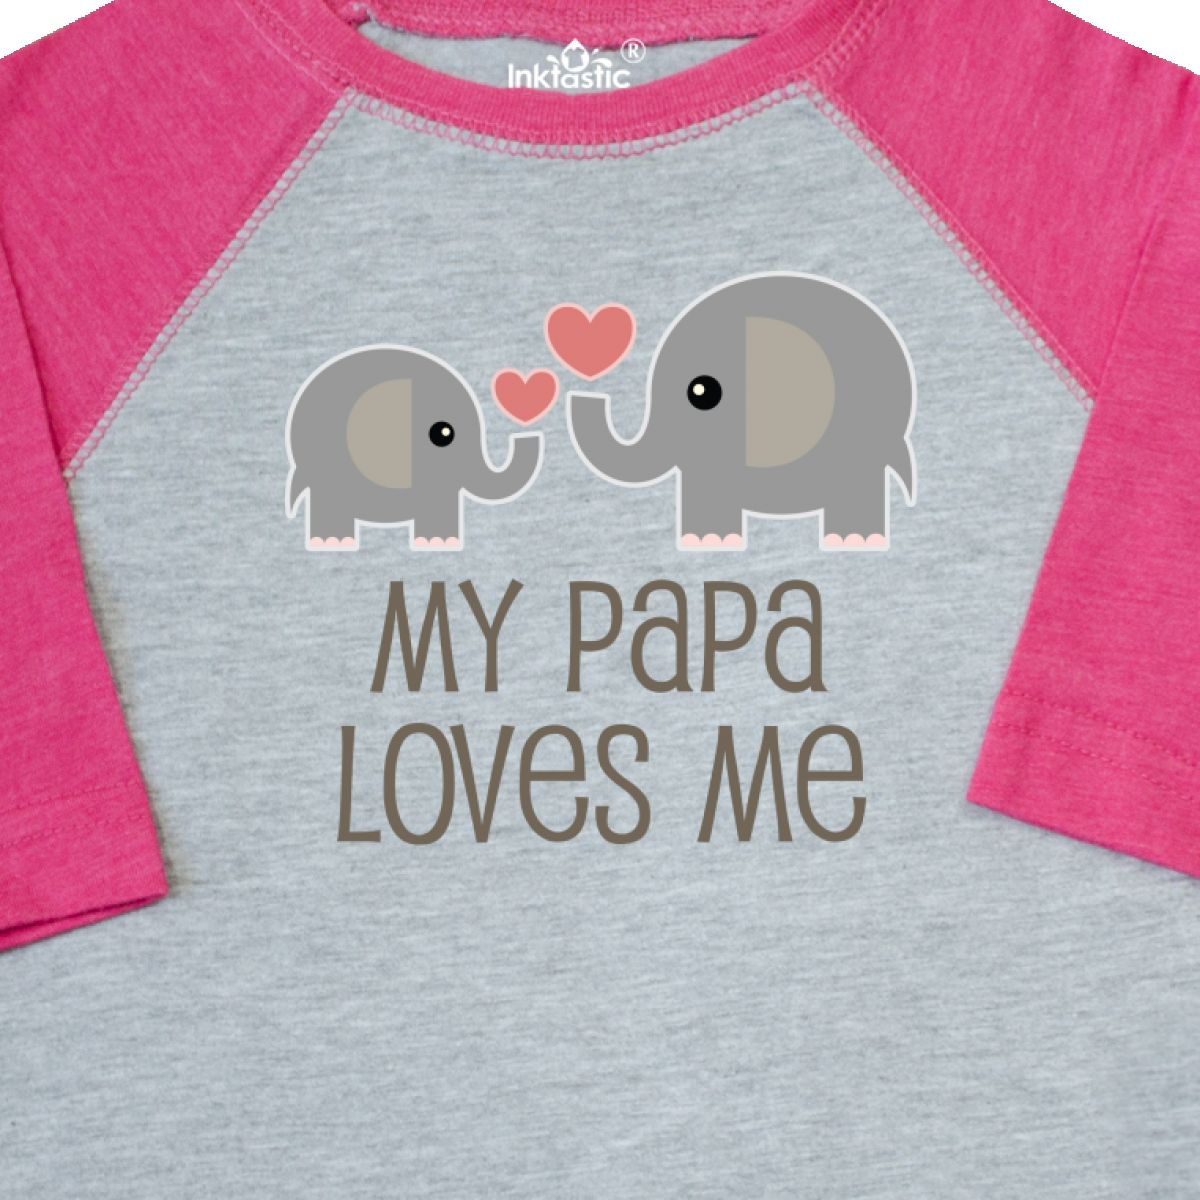 Inktastic-My-Papa-Loves-Me-Grandchild-Toddler-T-Shirt-Gift-From-Grandpa-Elephant thumbnail 4